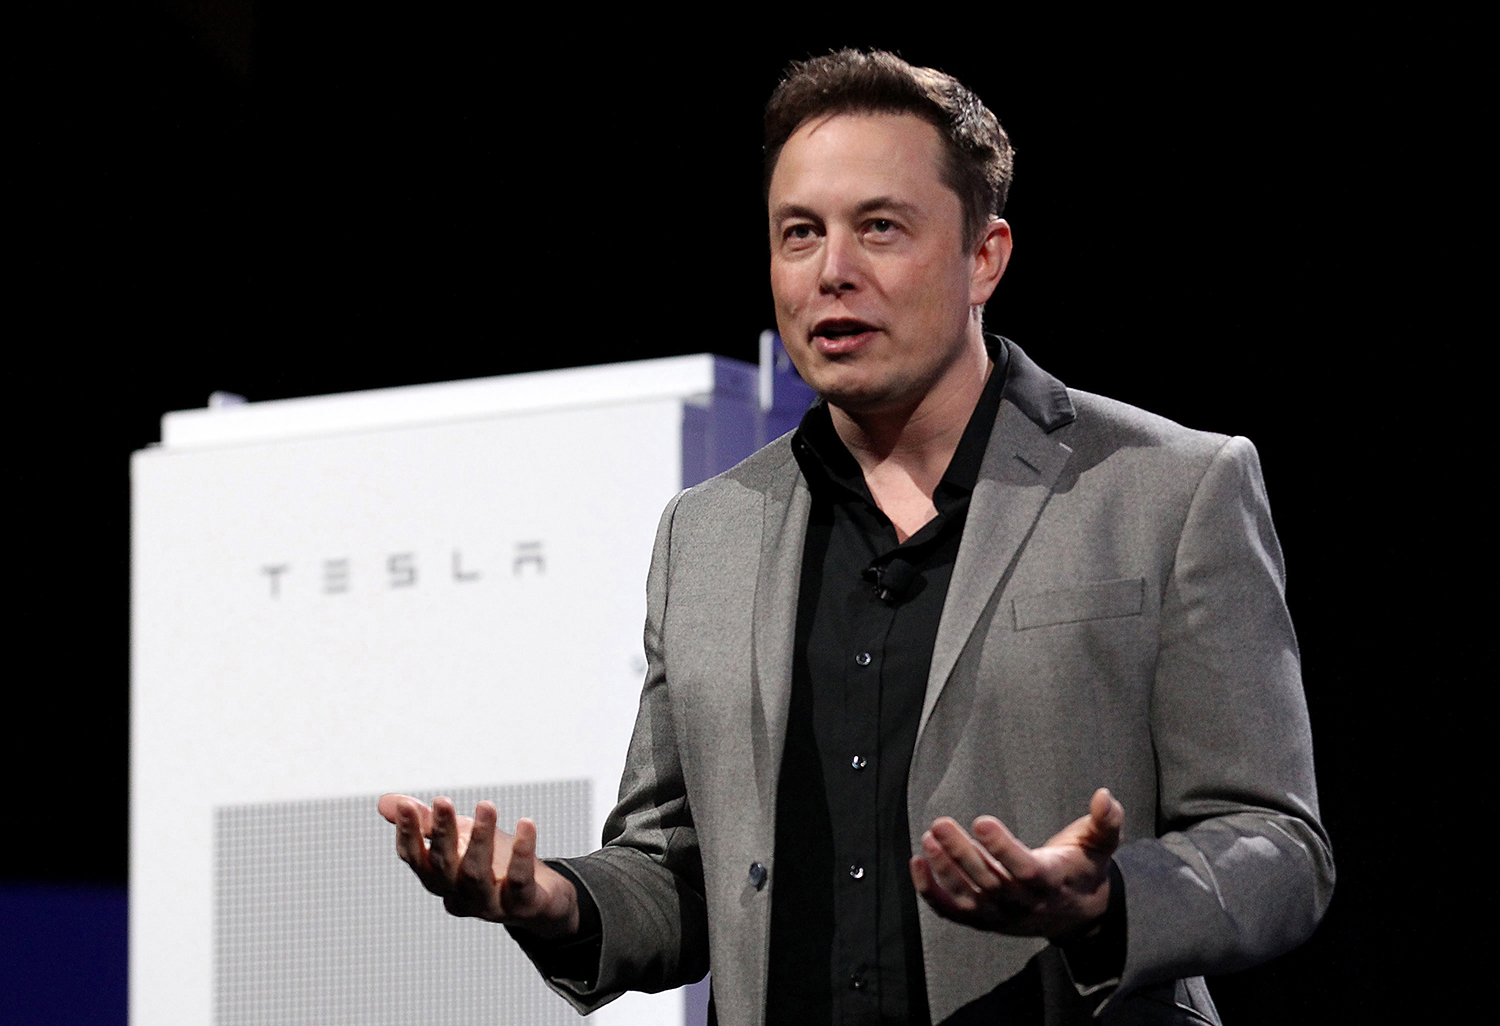 Tesla CEO Elon Musk on April 30, 2015 during an event at Tesla's plant in Hawthorne, California.  (Luis Sinco/Los Angeles Times/TNS)